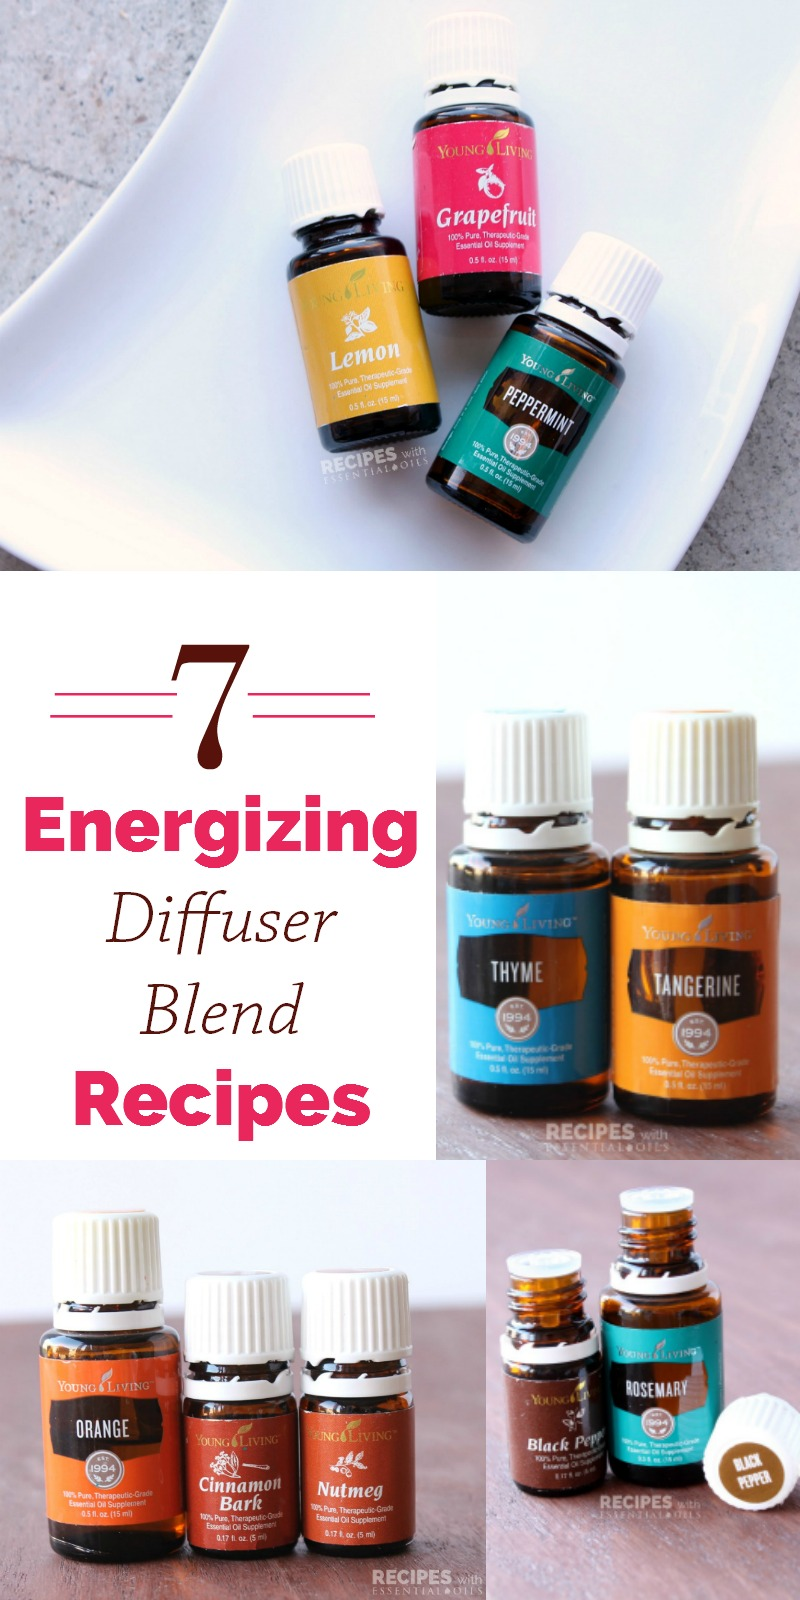 Diffuser And Oils Part - 38: 7 Energizing Diffuser Blend Recipes From RecipeswithEssentialOils.com